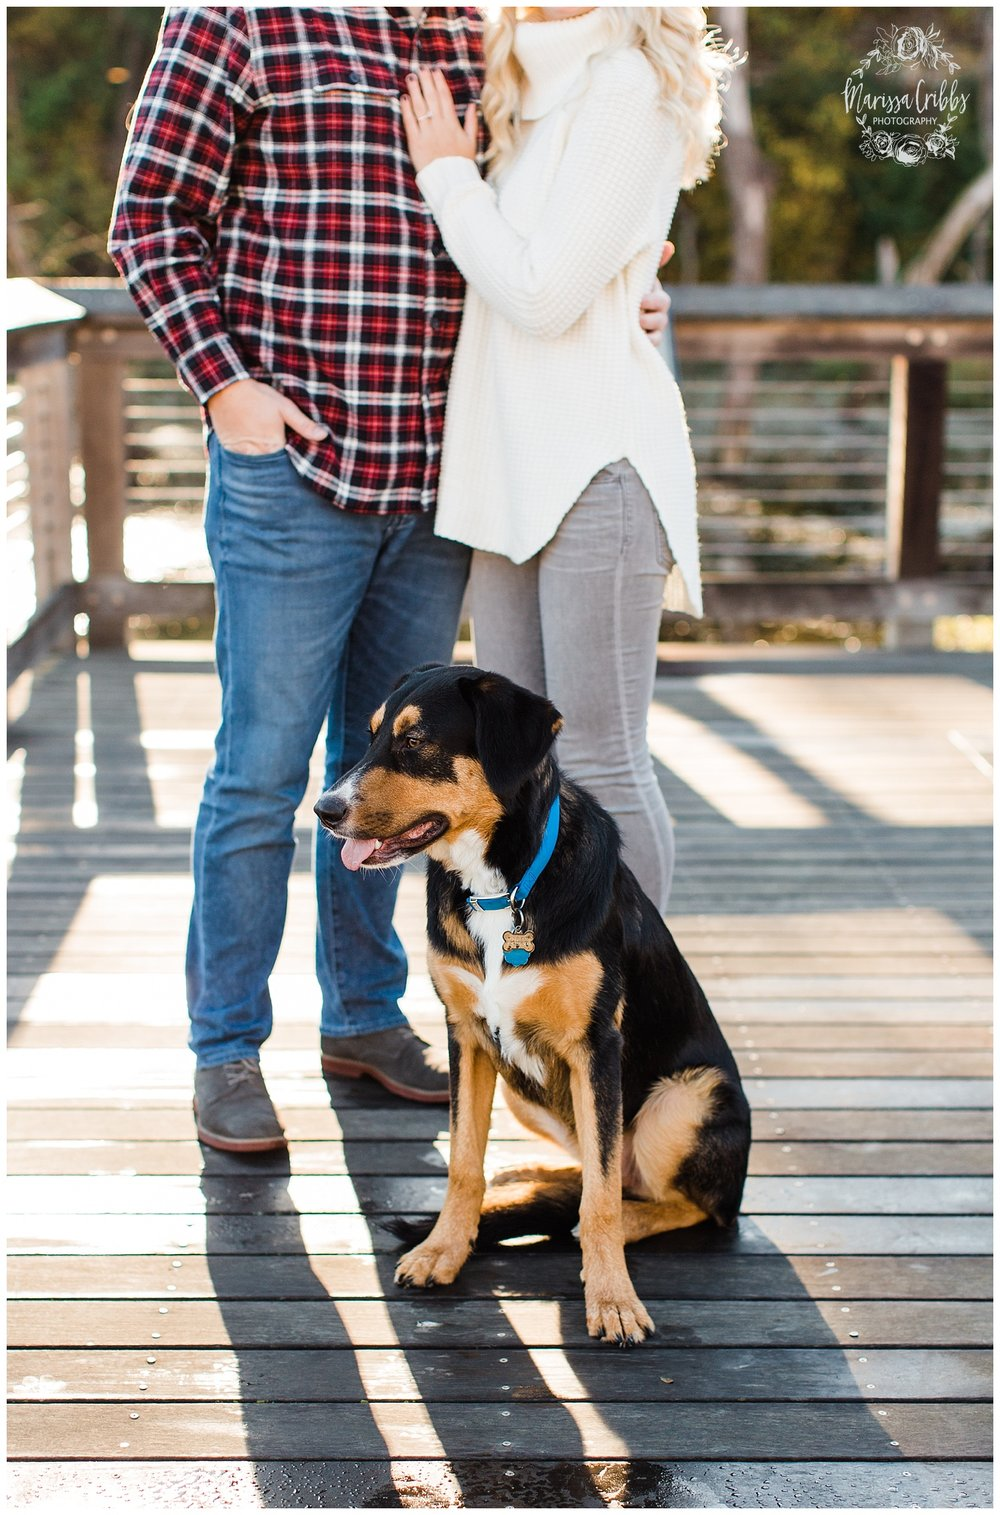 MORGAN HUGHES & RYAN ENGAGEMENT | KC ENGAGEMENT PHOTOS | MARISSA CRIBBS PHOTOGRAPHY_3363.jpg